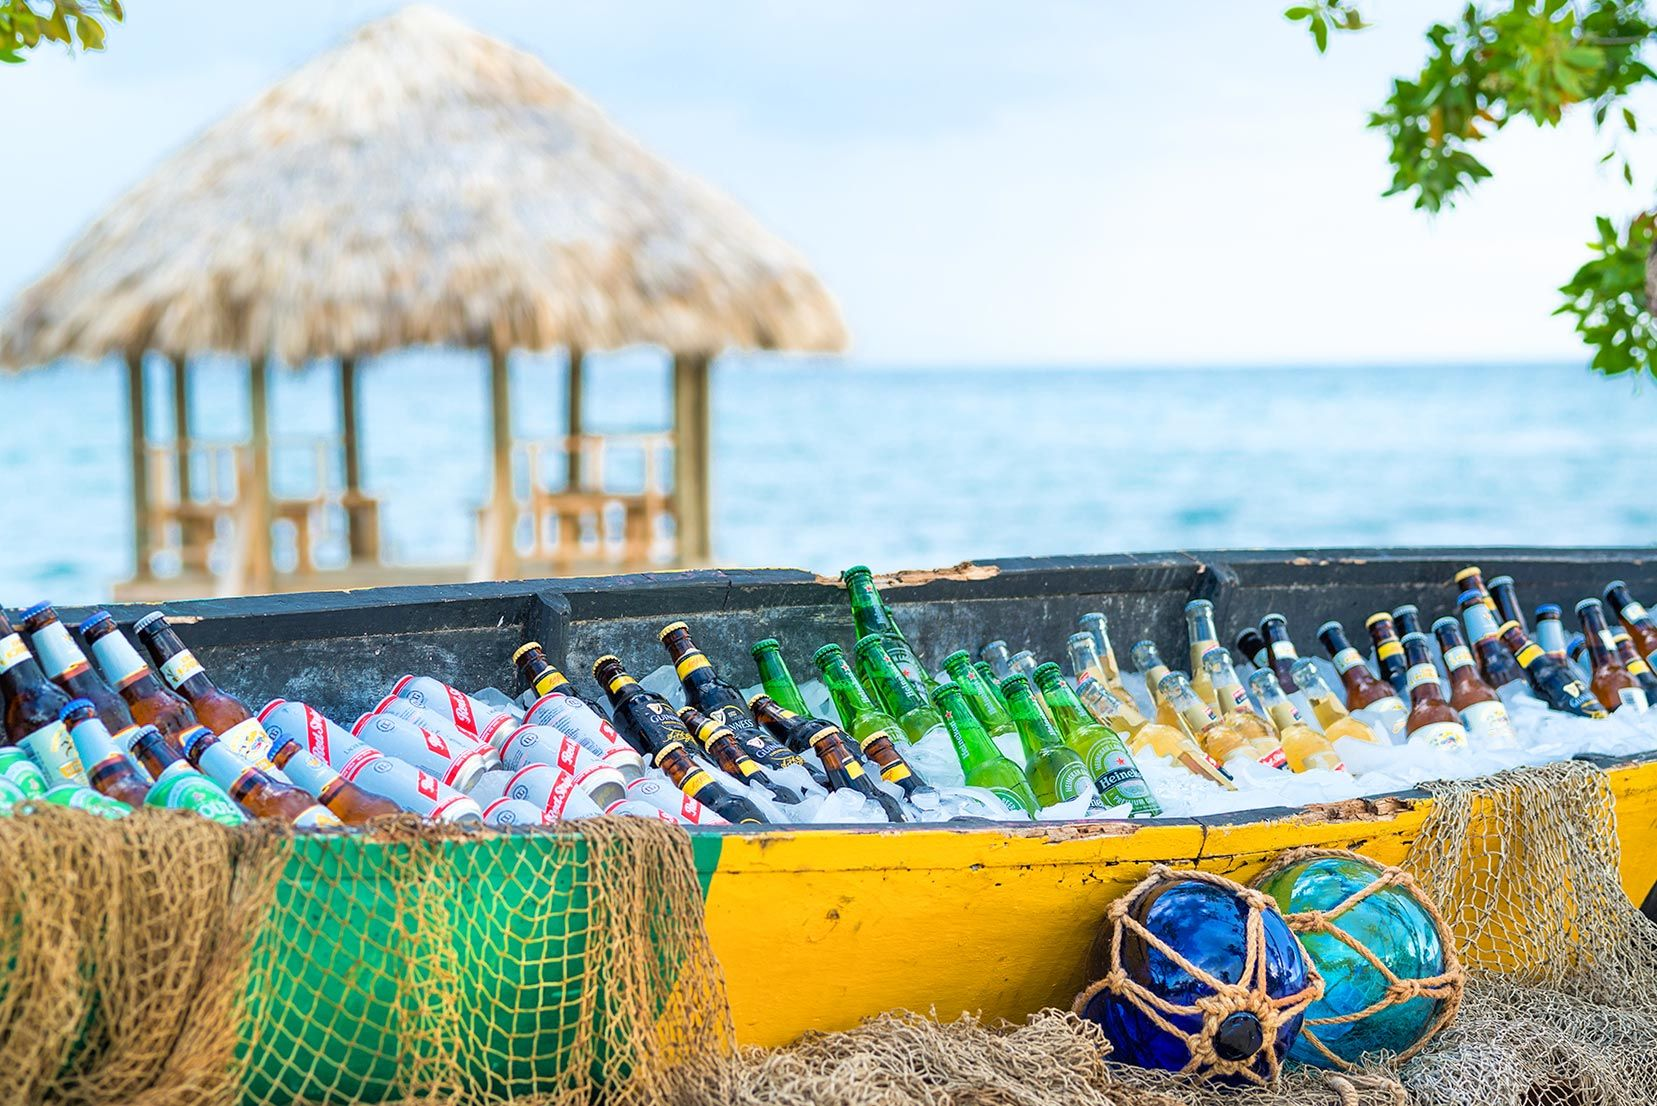 Canoe filled with cold drinks